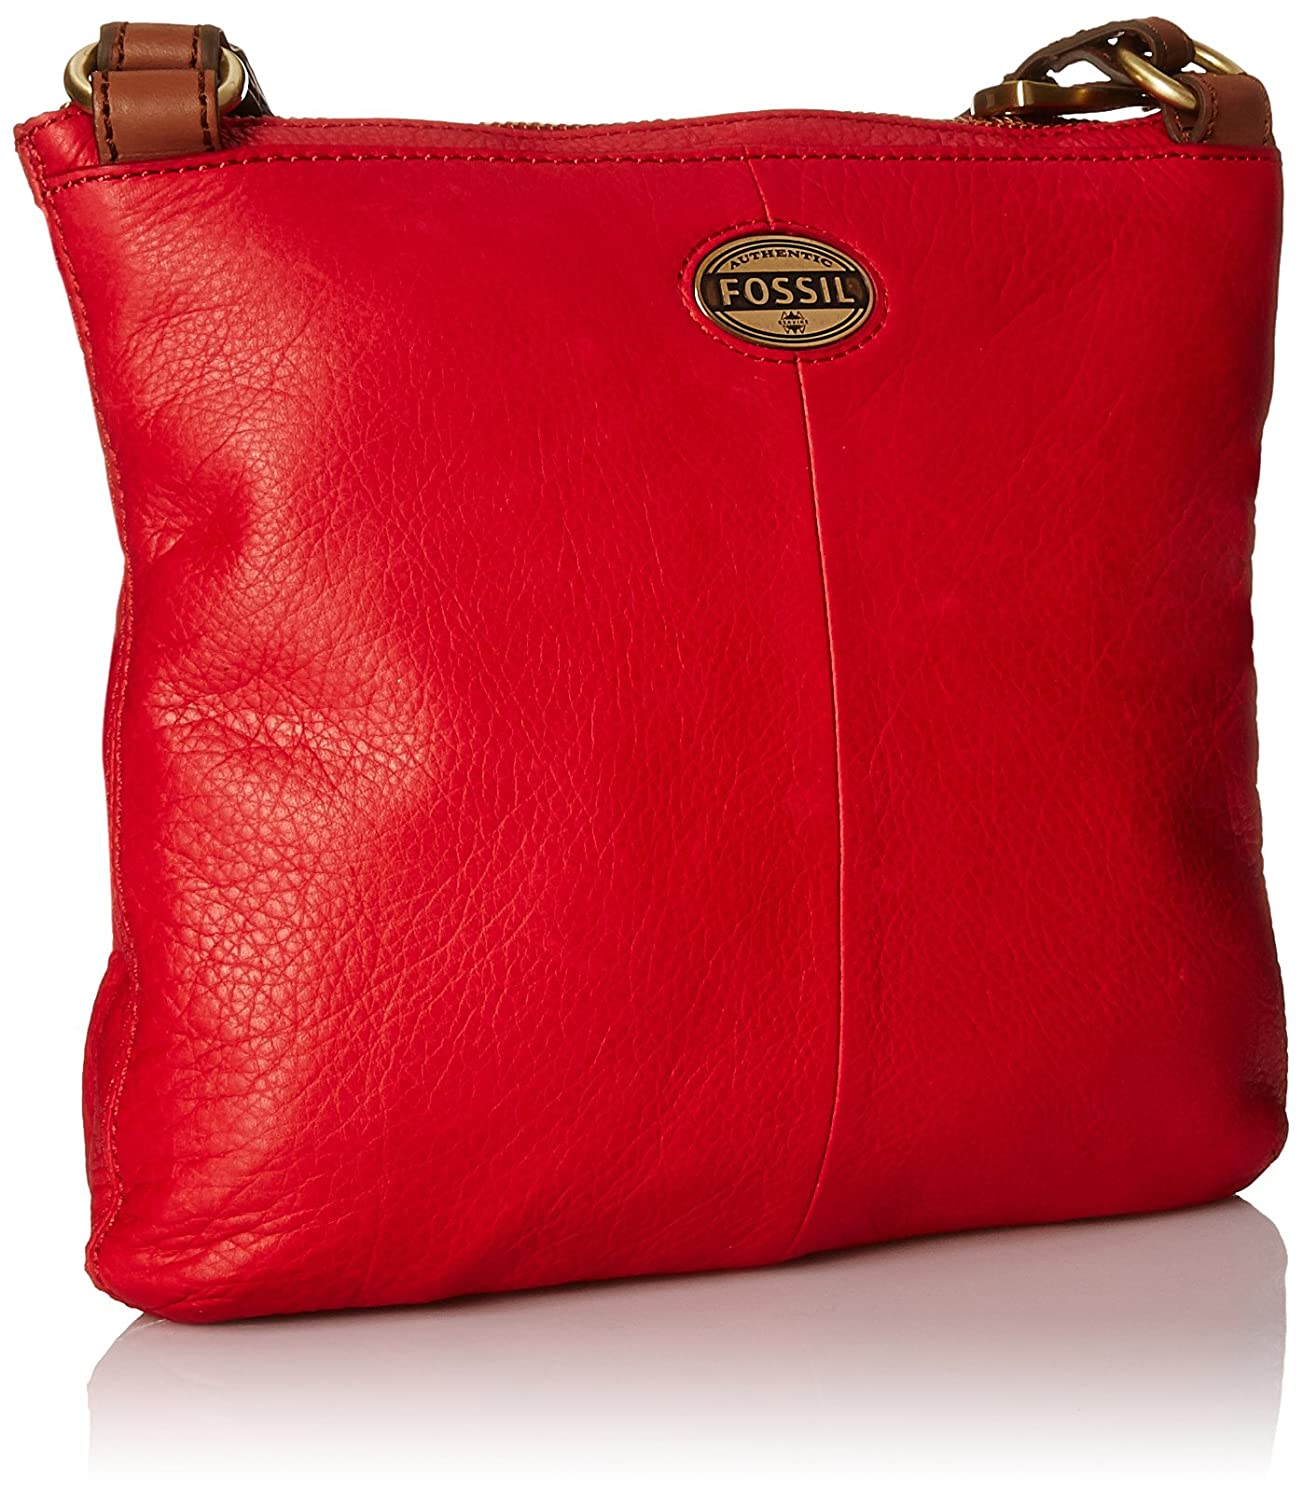 Fossil Explorer Crossbody Real Red One Size Handbags Amazoncom Dawson Satchel Espresso